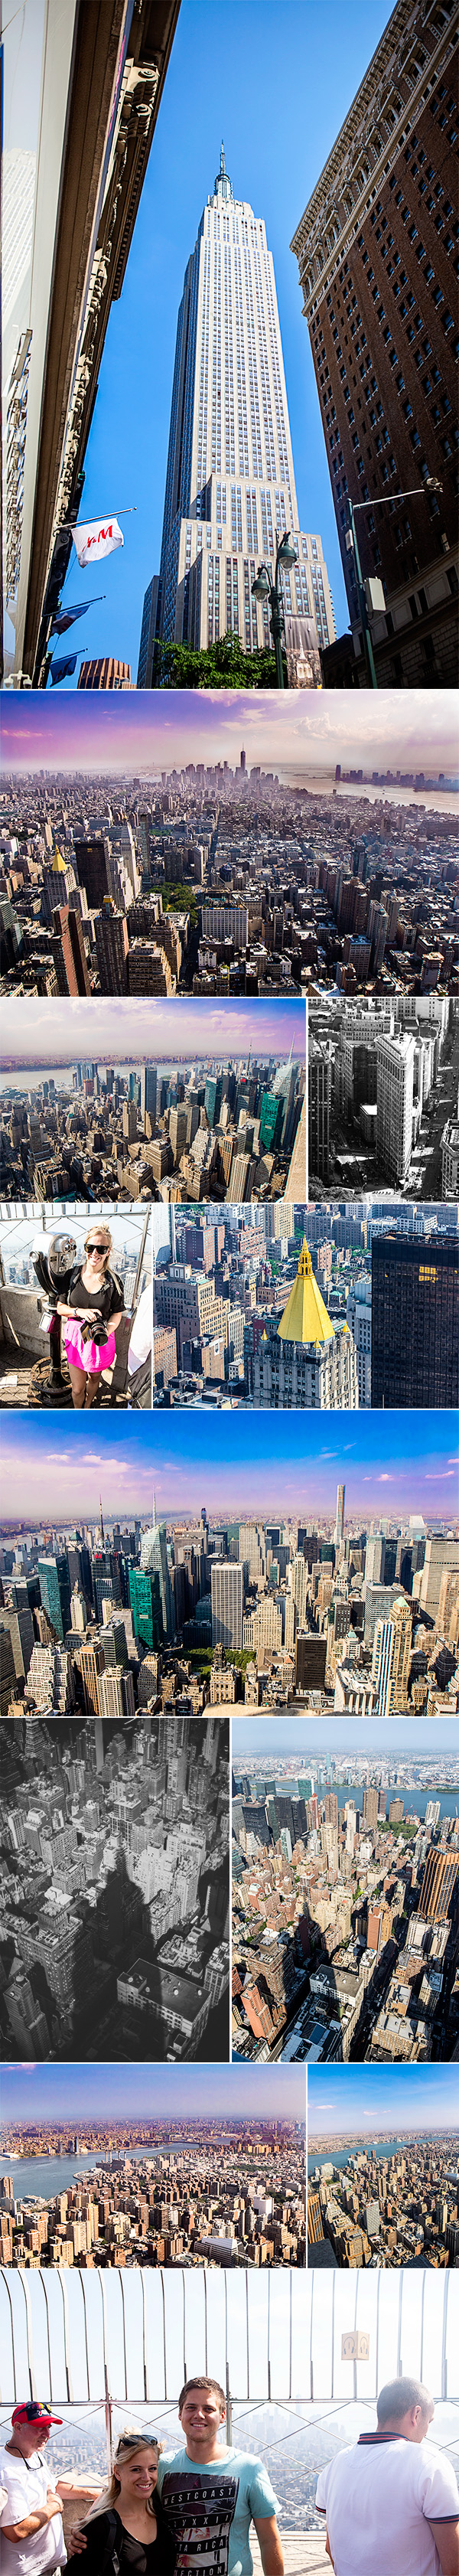 10-empire state building